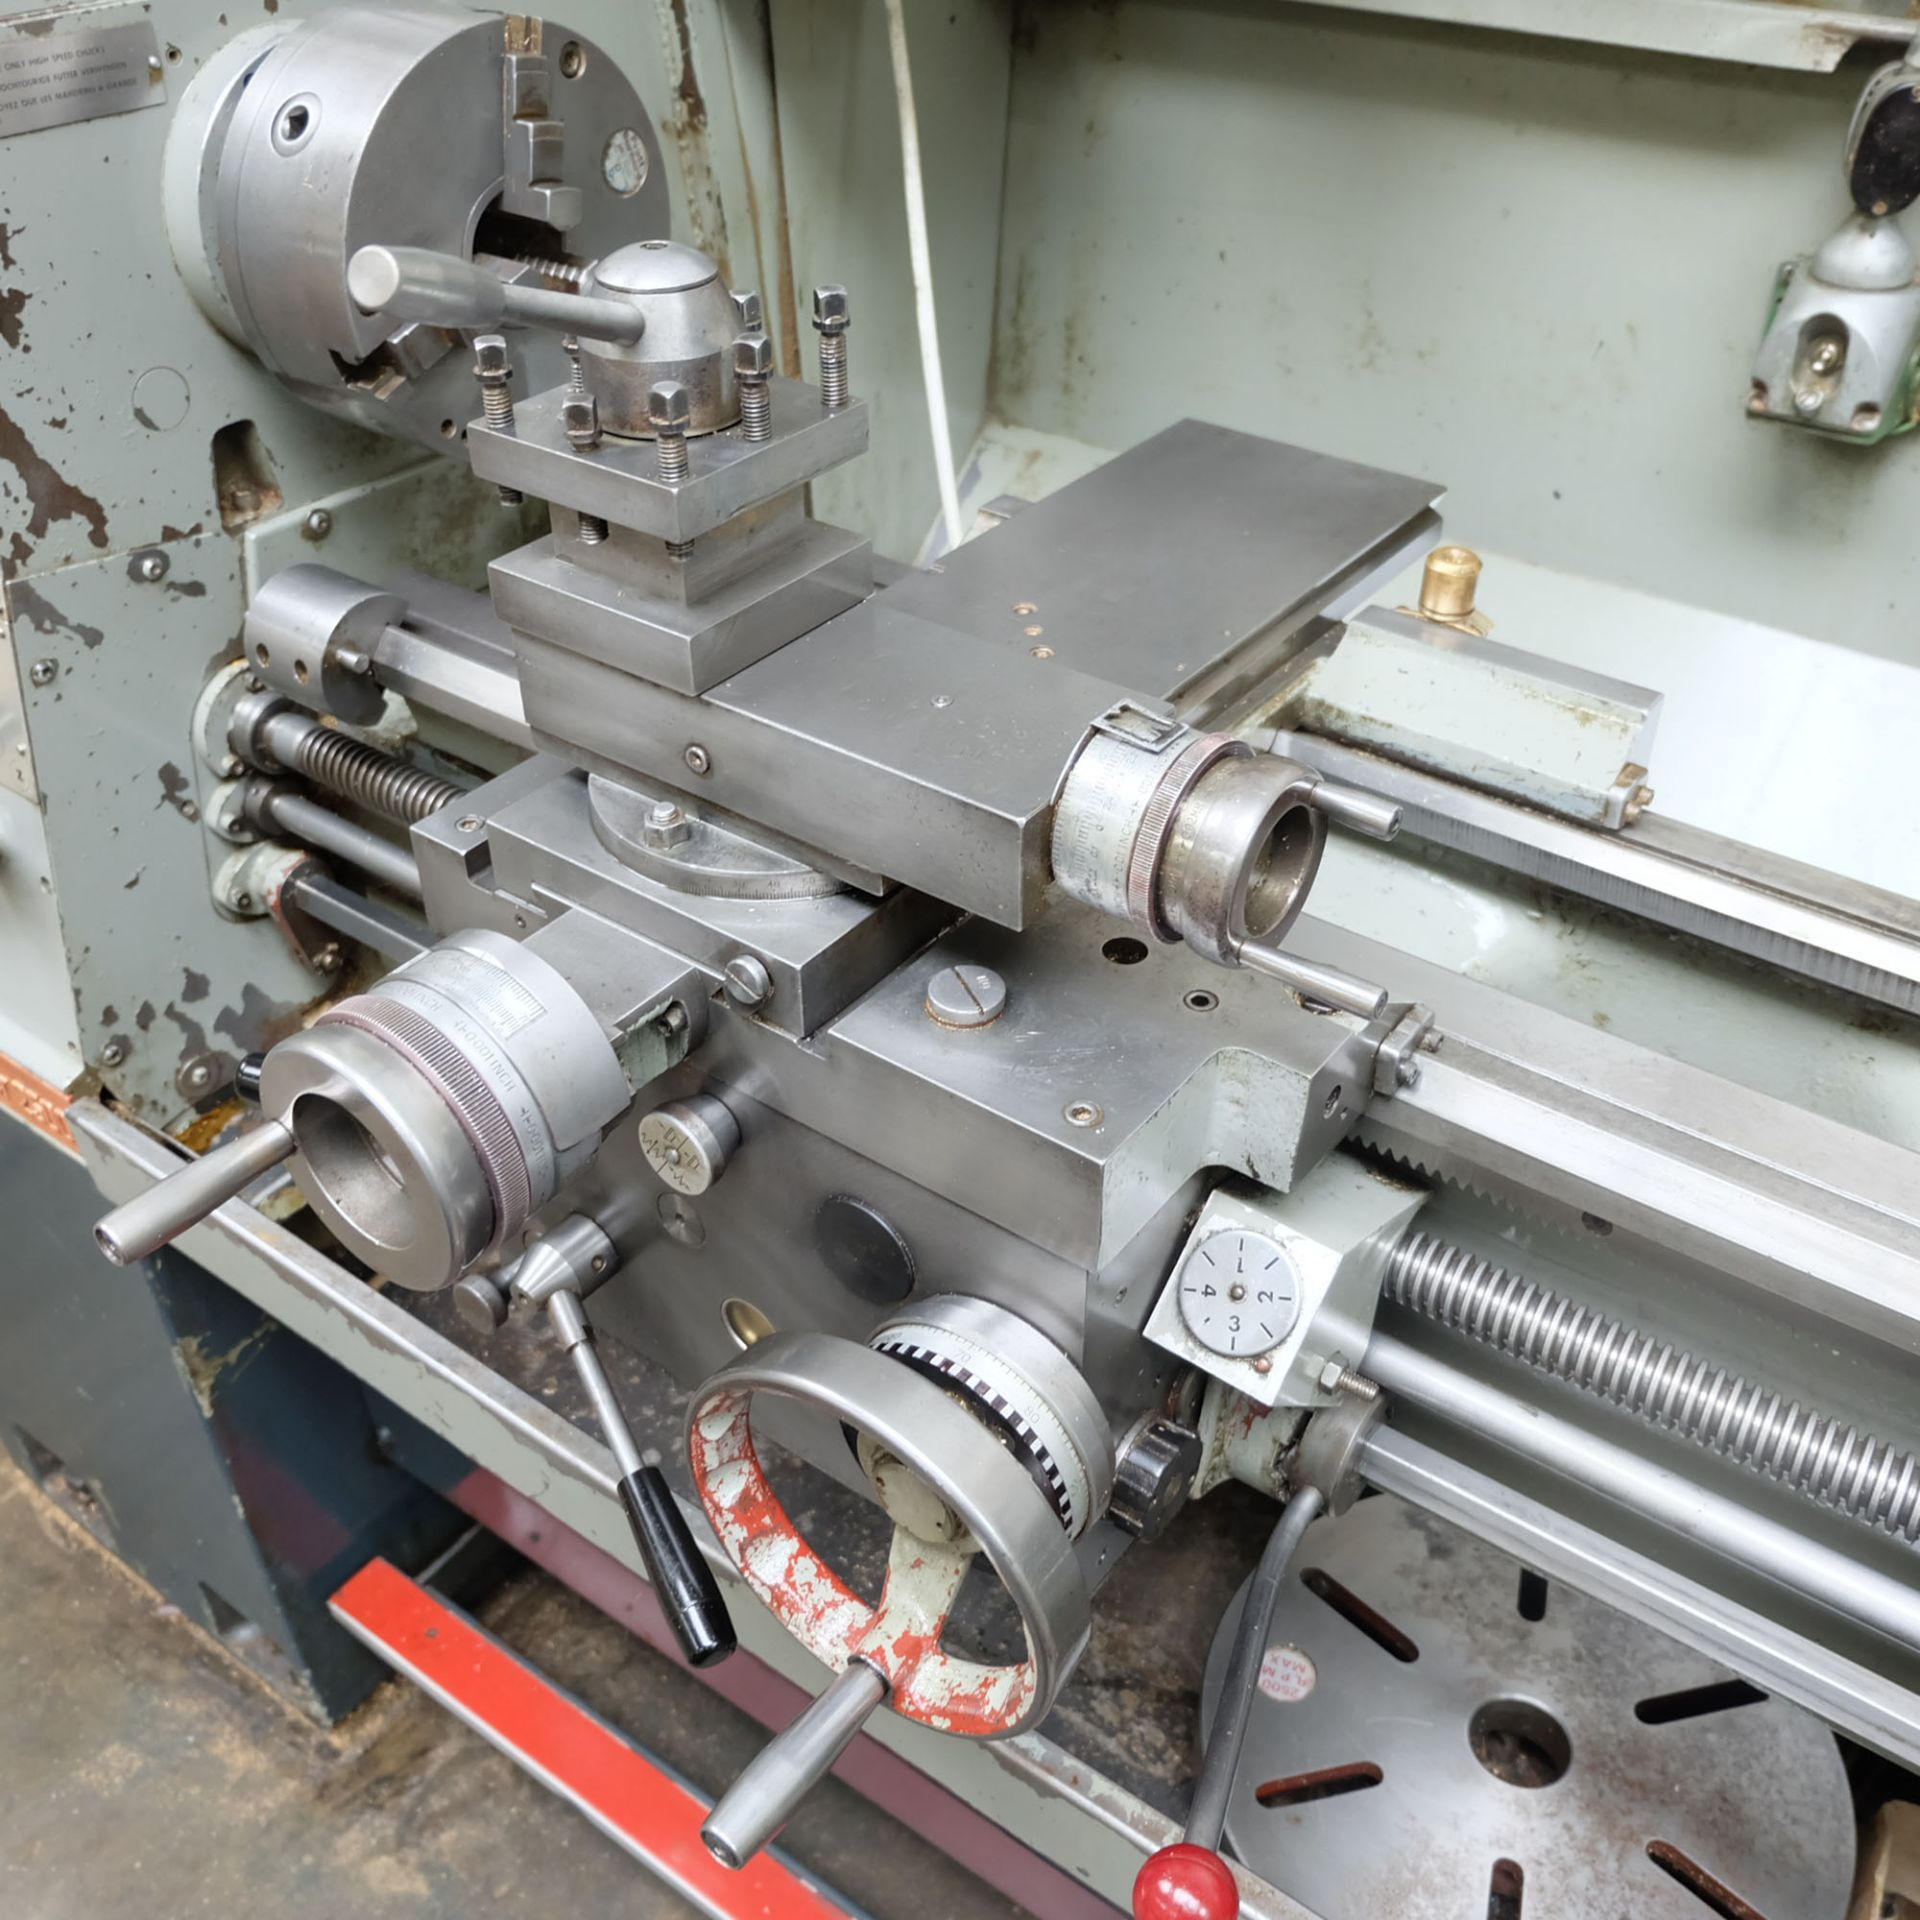 Colchester Master 2500 Gap Bed Centre Lathe. - Image 7 of 10